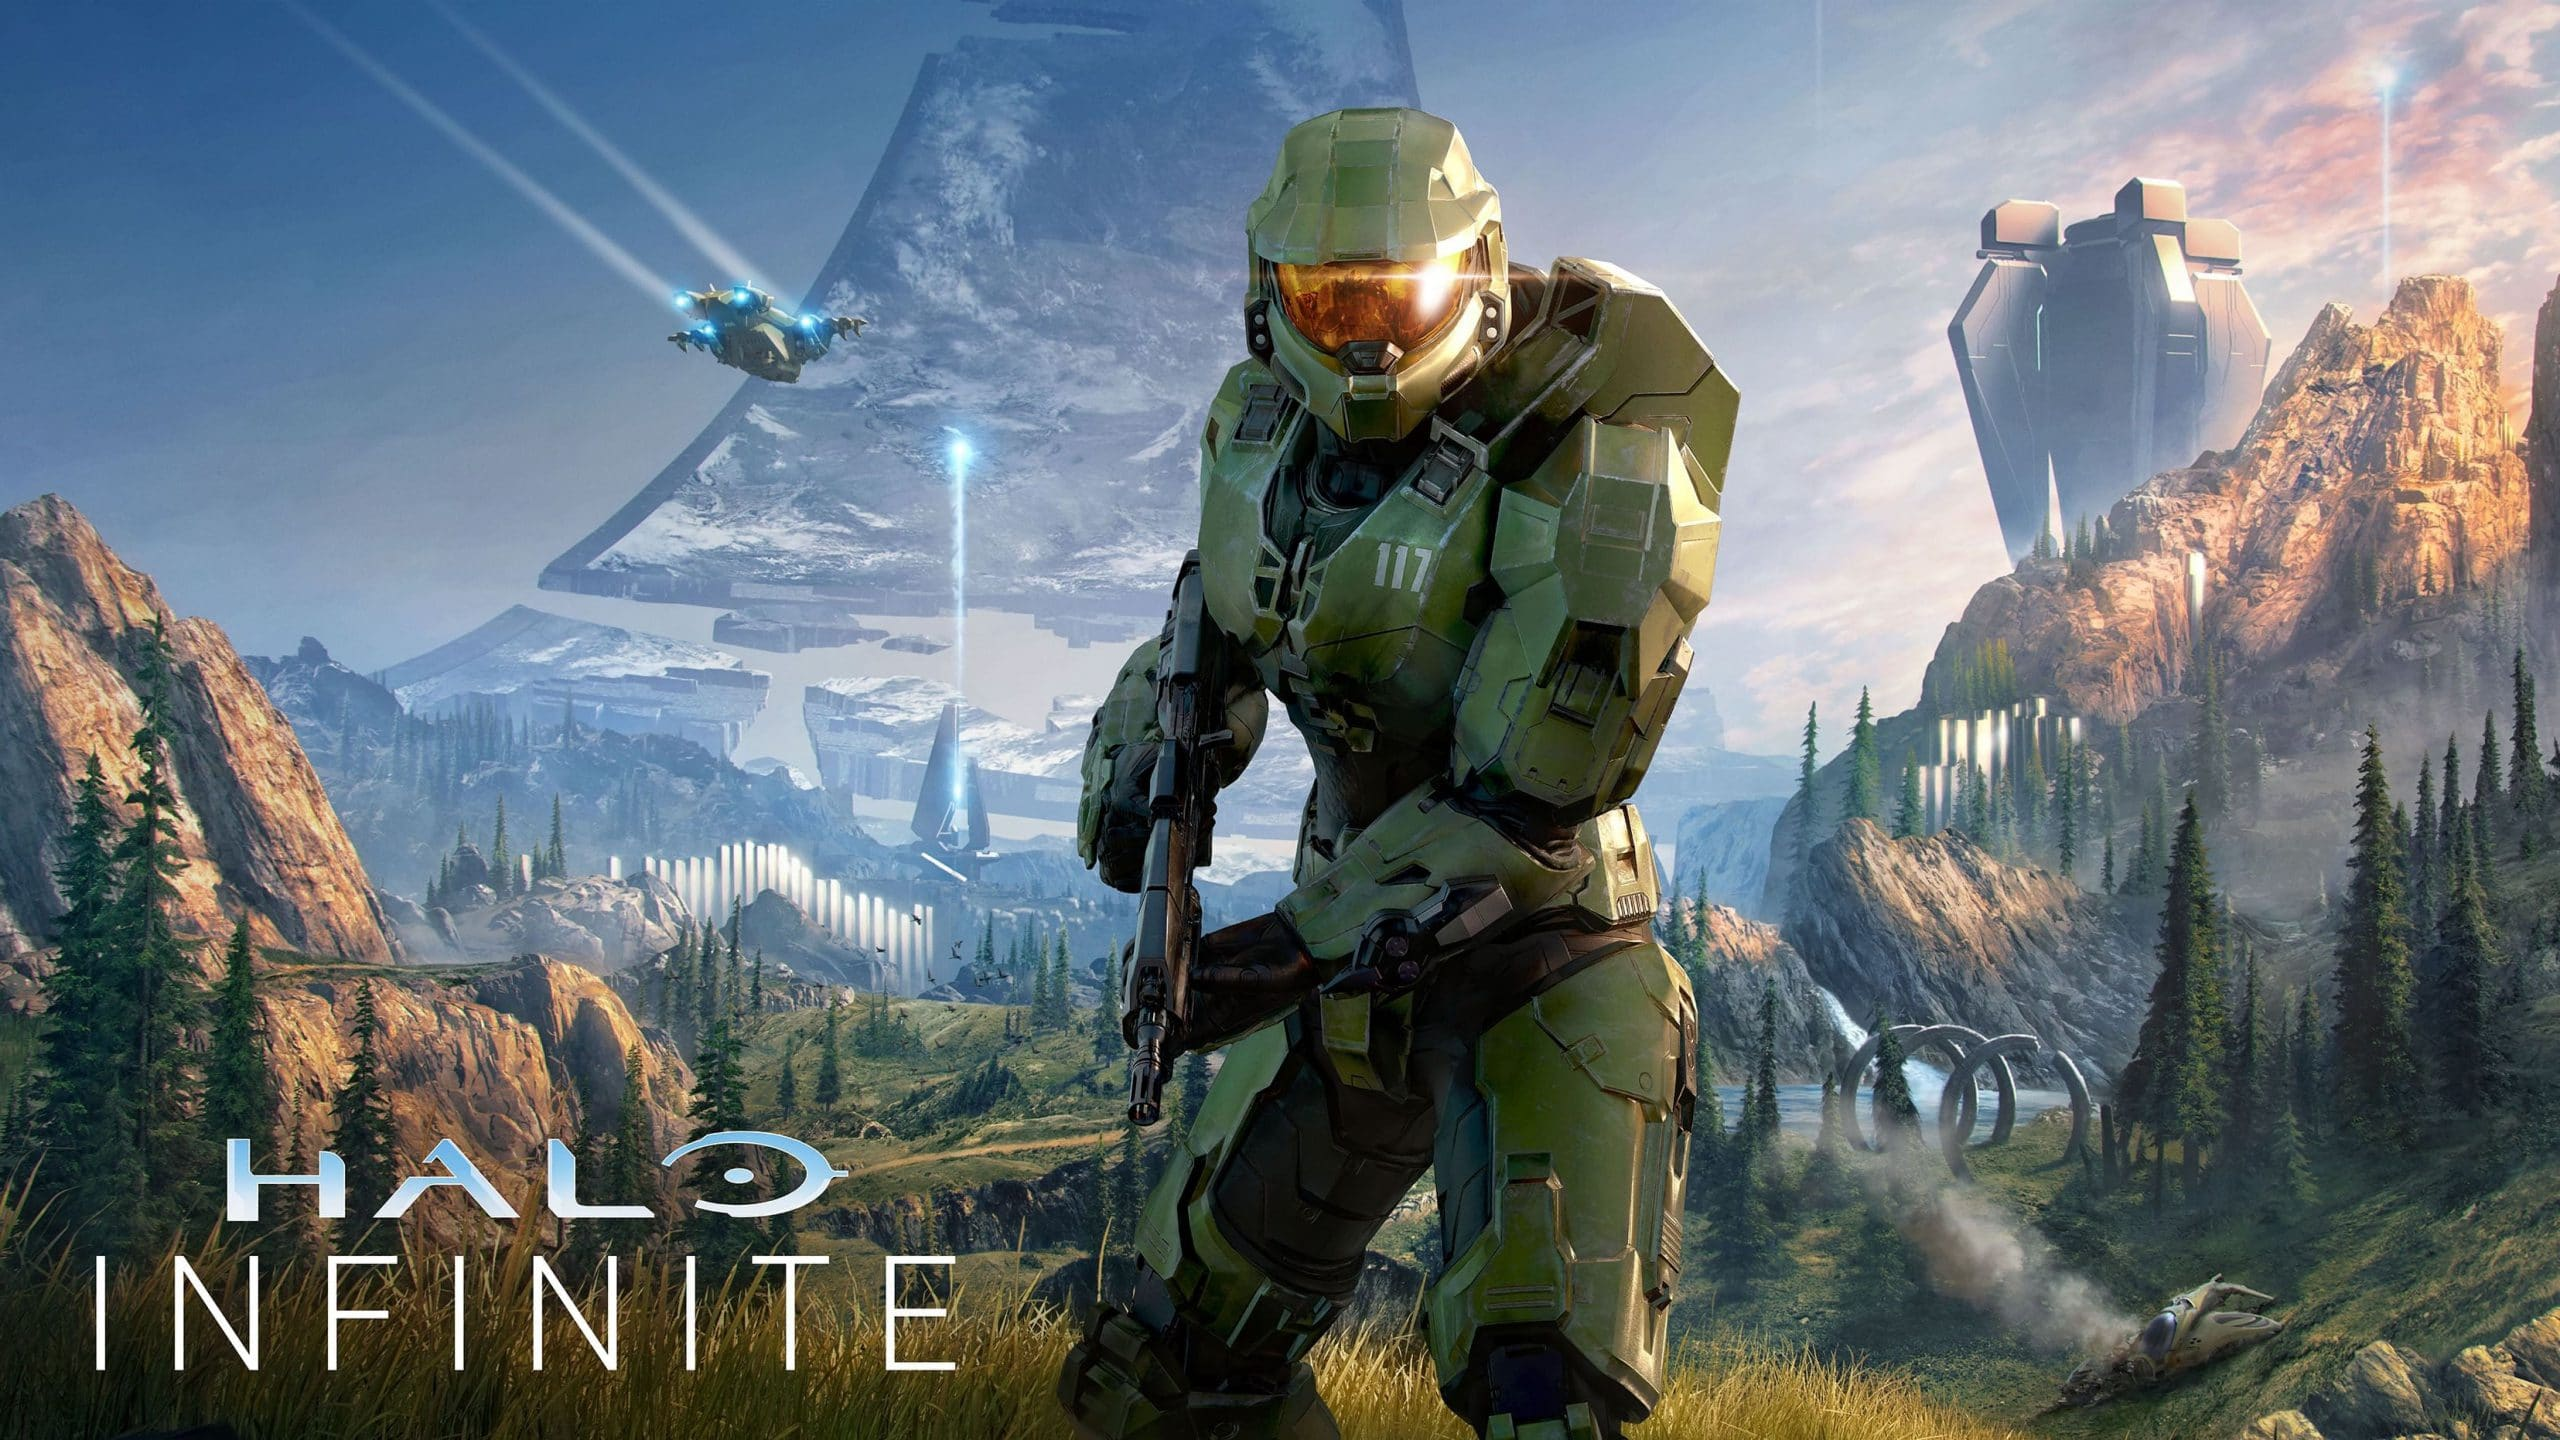 No, Halo: Infinite Is Not Cancelled/Delayed